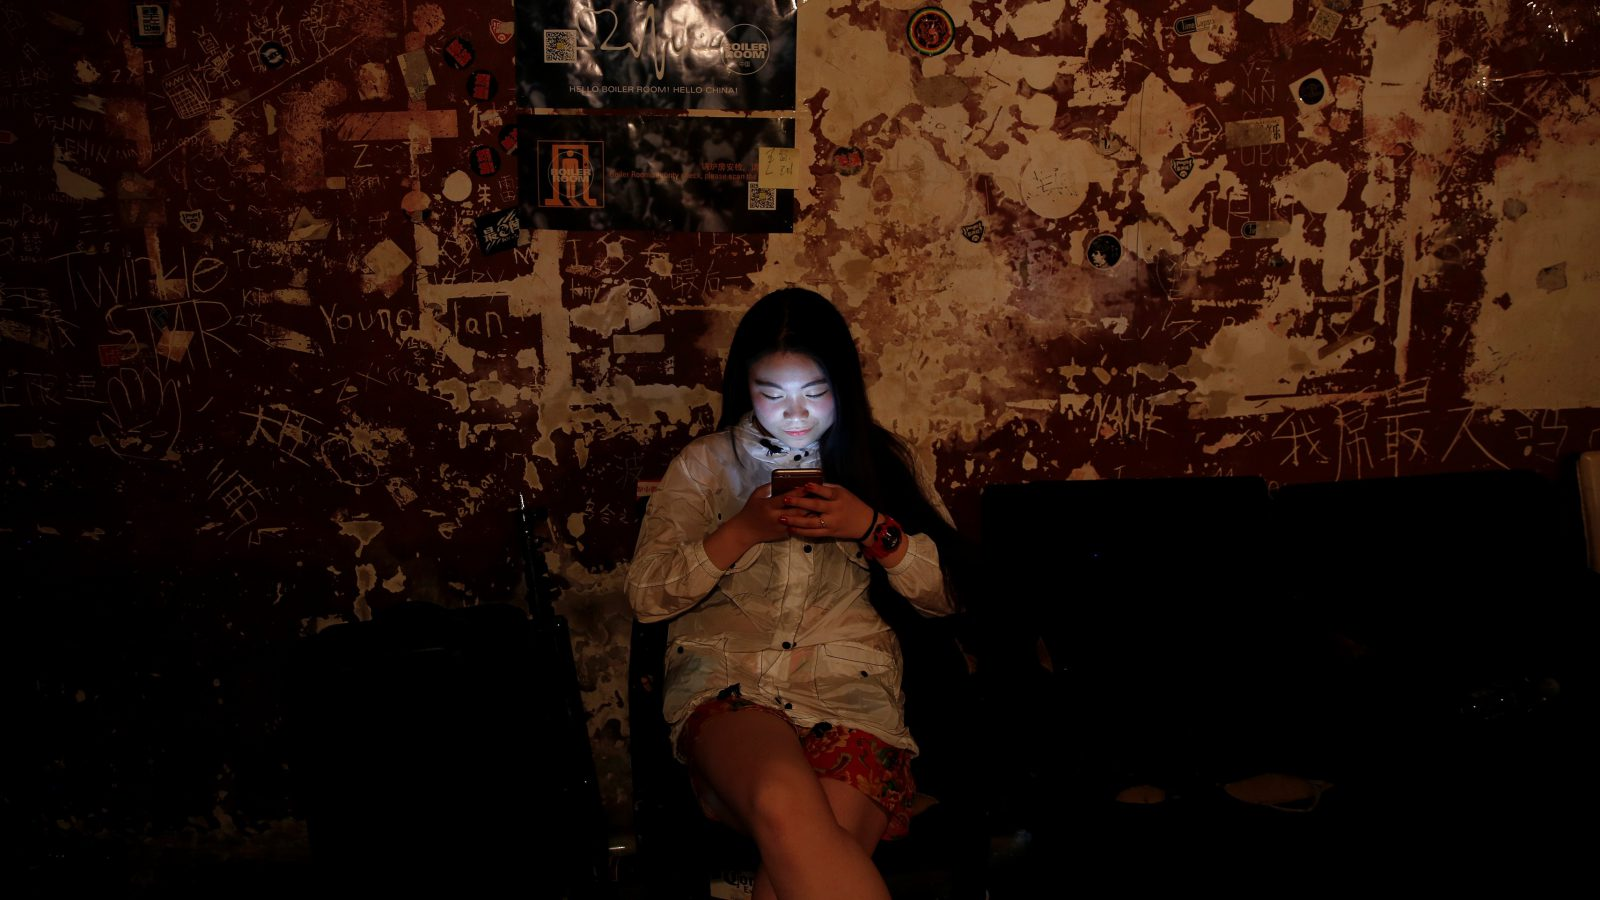 "A girl uses her phone at Mao Live House during its last public concert night in central Beijing, China April 24, 2016. Mao Live House, a prominent live rock music venue in Beijing, shut its doors on the weekend, the latest closure to hit China's rock music scene. Owner Li Chi said the club, popular among fans of punk, metal and alternative rock since it opened nine years ago, was forced to close due to tighter rules on live performances. REUTERS/Damir Sagolj      SEARCH ""MAO LIVE"" FOR THIS STORY. SEARCH ""THE WIDER IMAGE"" FOR ALL STORIES  - RTX2CLFE"